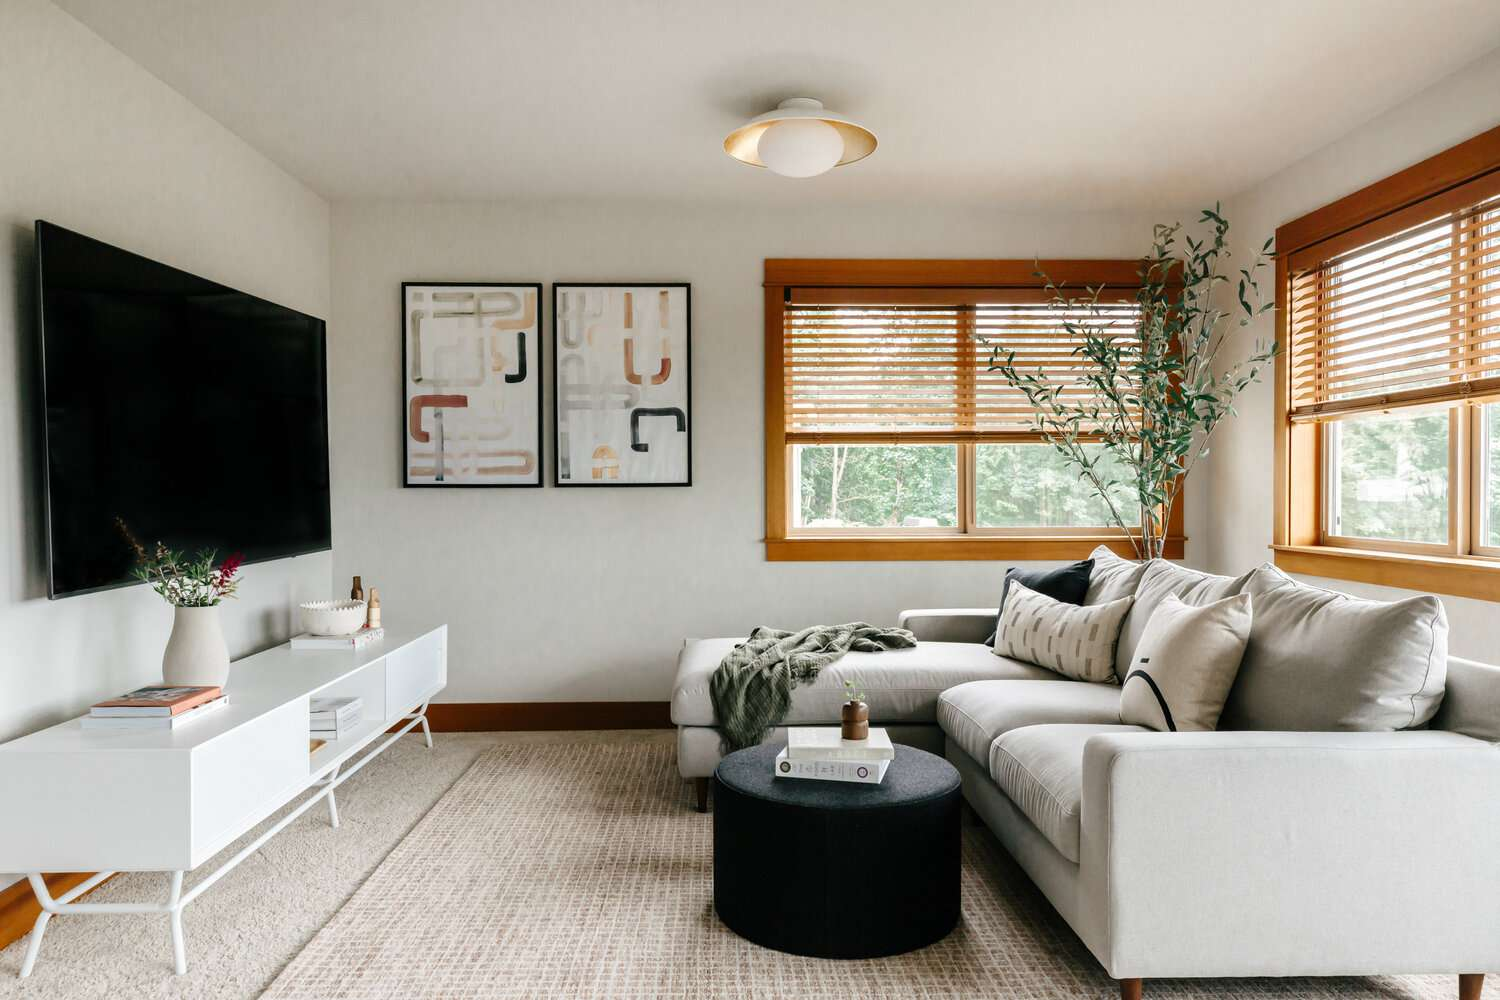 Small living room with couch against a long wall